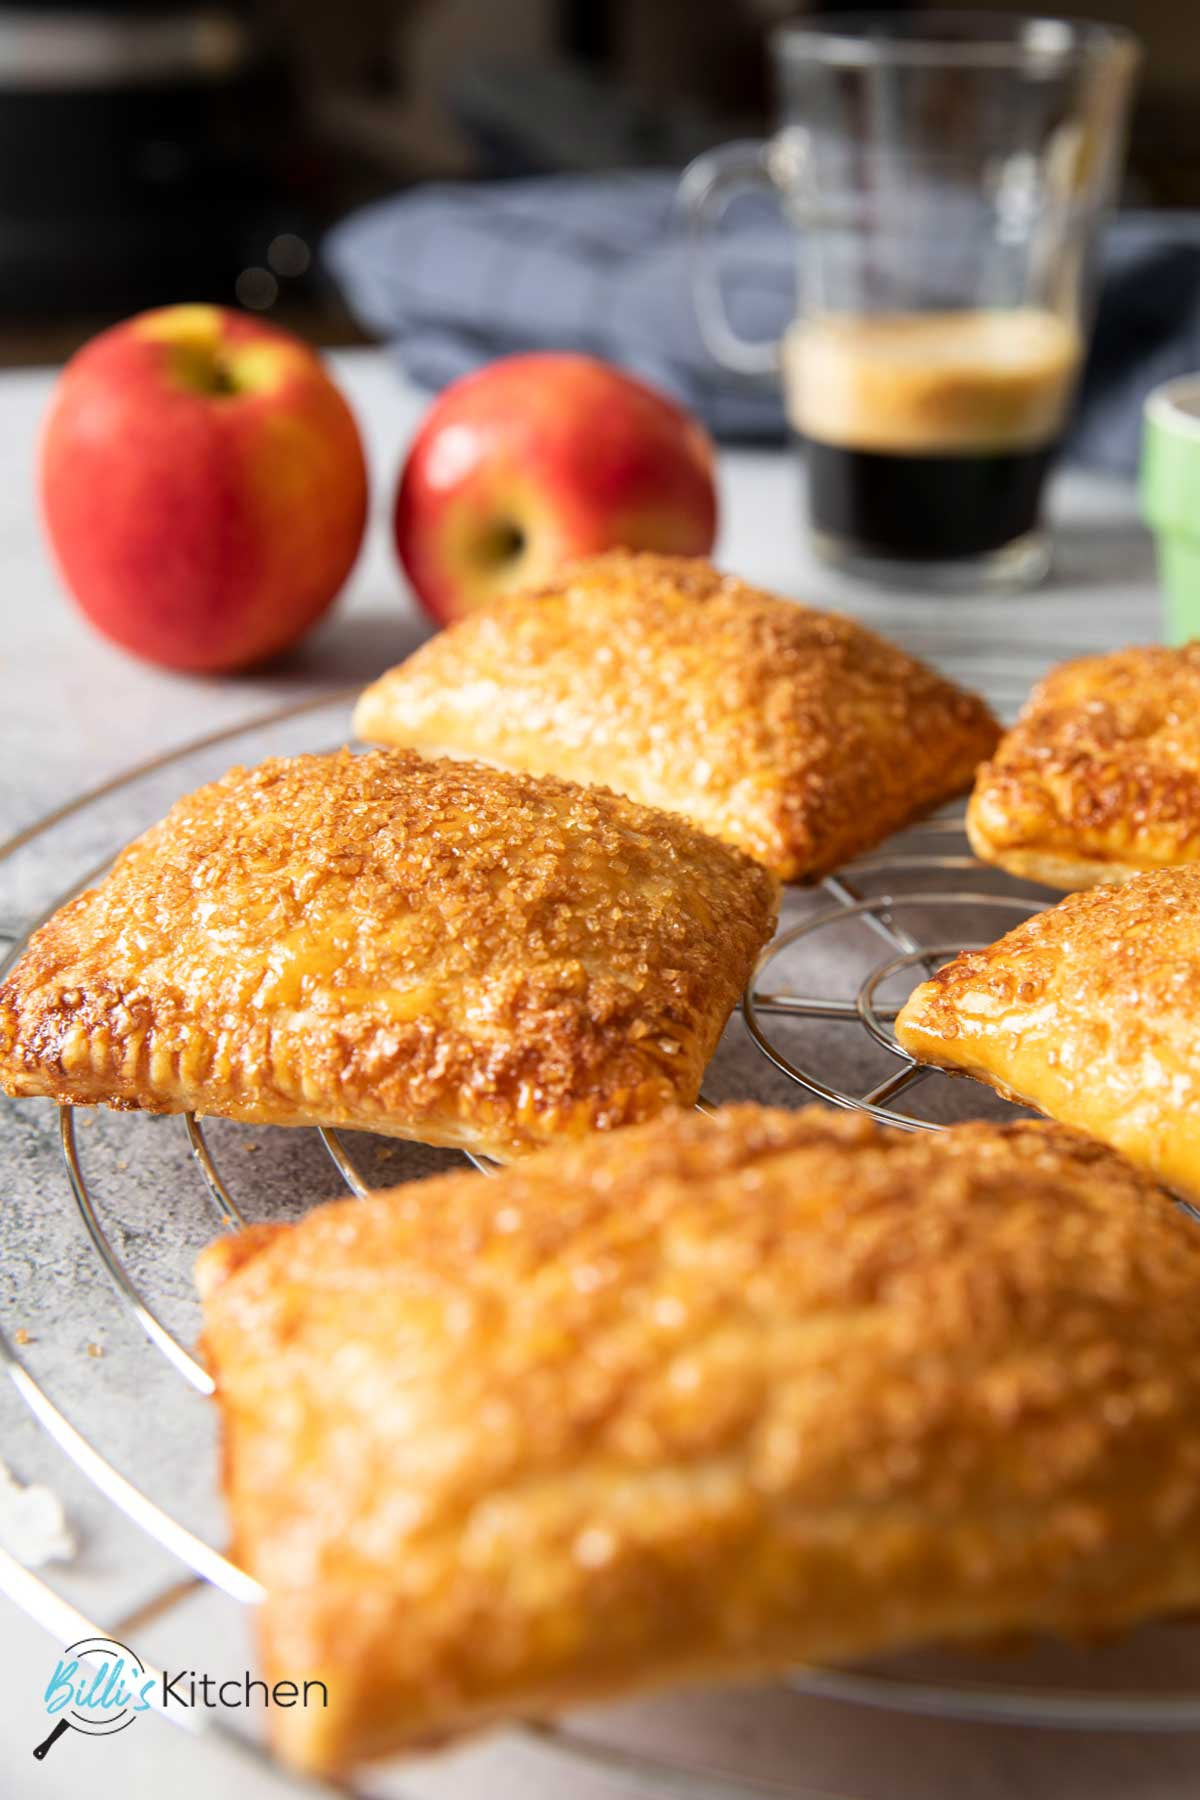 Freshly baked apple turnovers with puff pastry, cooling on a rack, ready for serving.